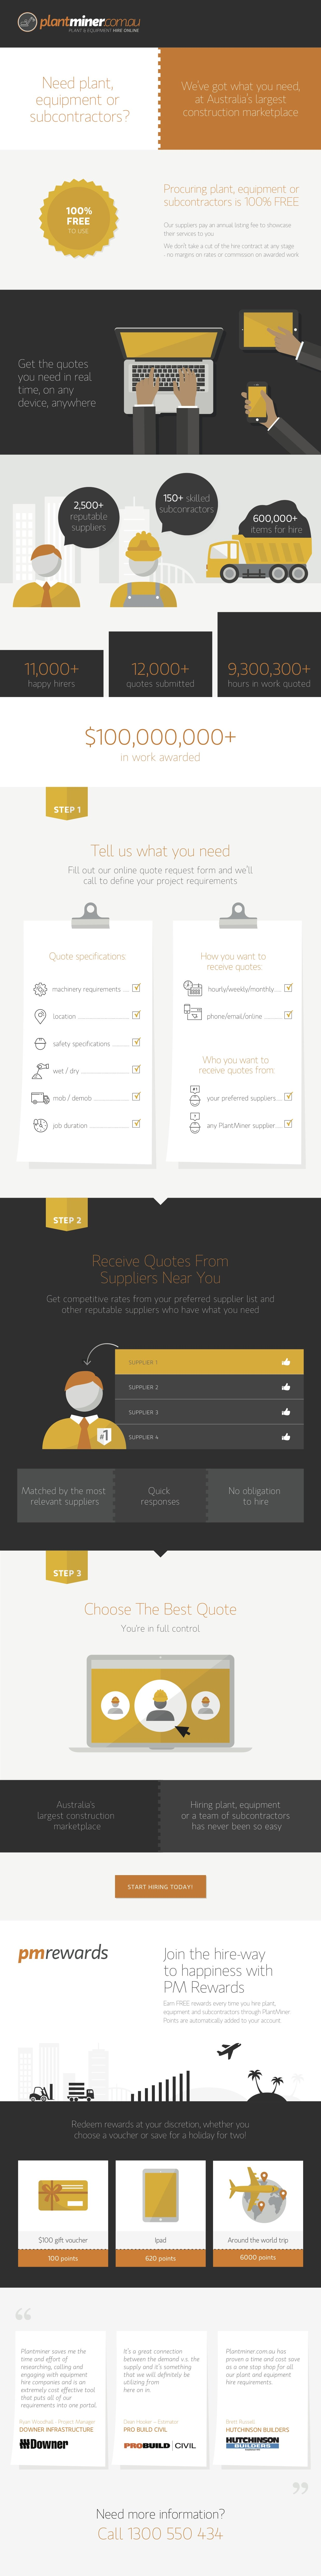 PM-InfographicForSearchers-T1-V2-01